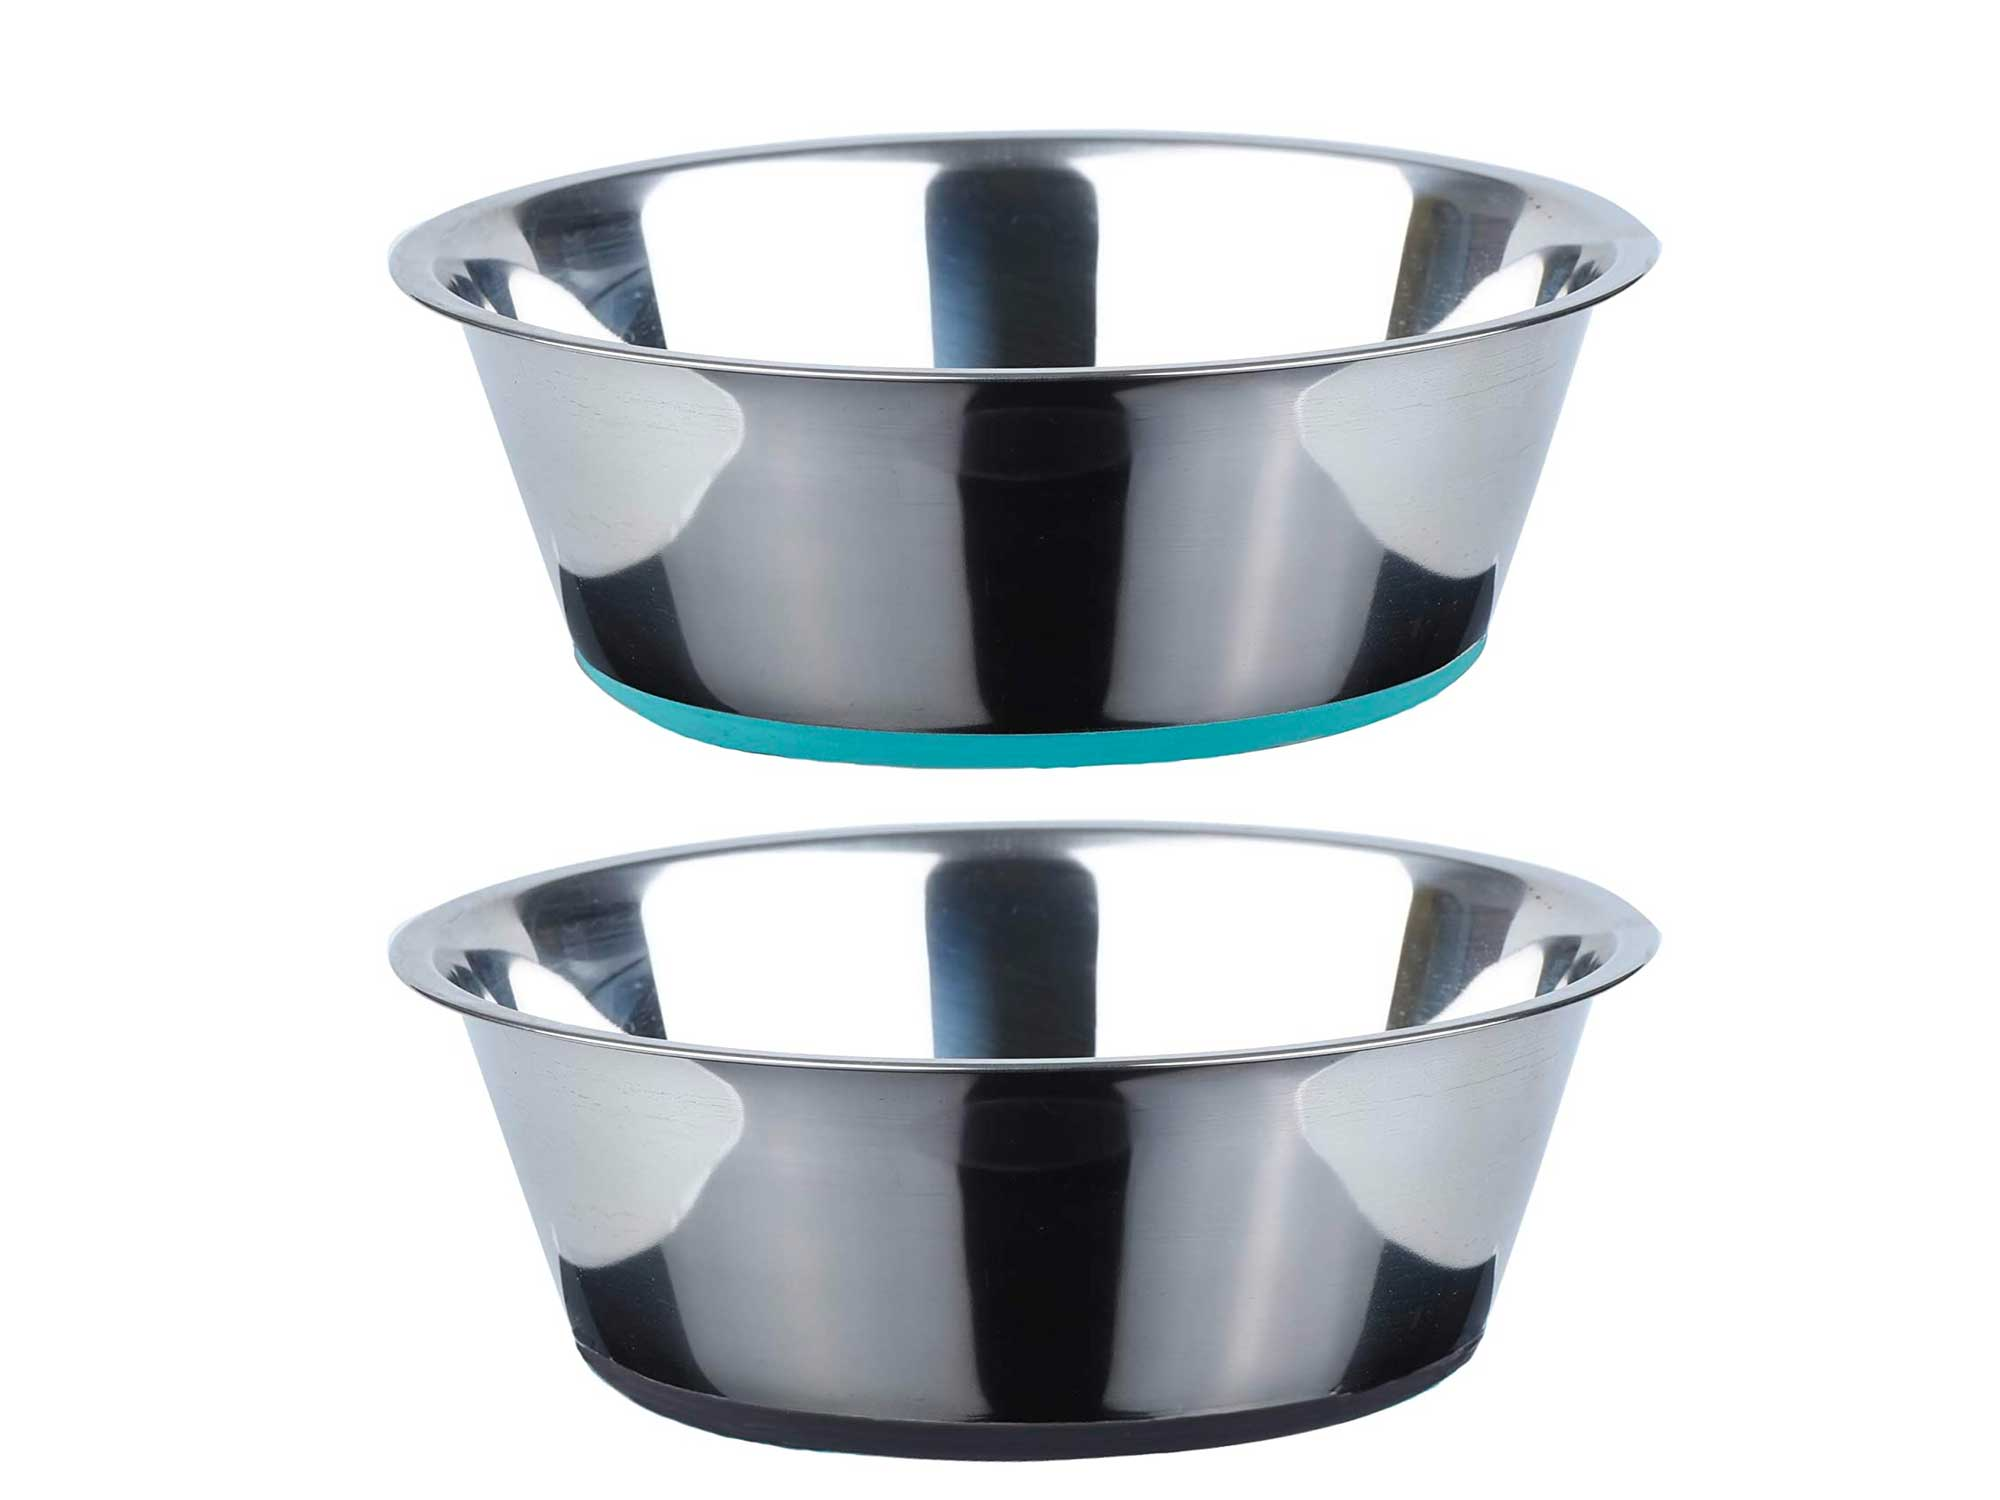 PEGGY11 No Spill Non-Skid Stainless Steel Deep Dog Bowls 26 Oz (3 Cups) Set of 2